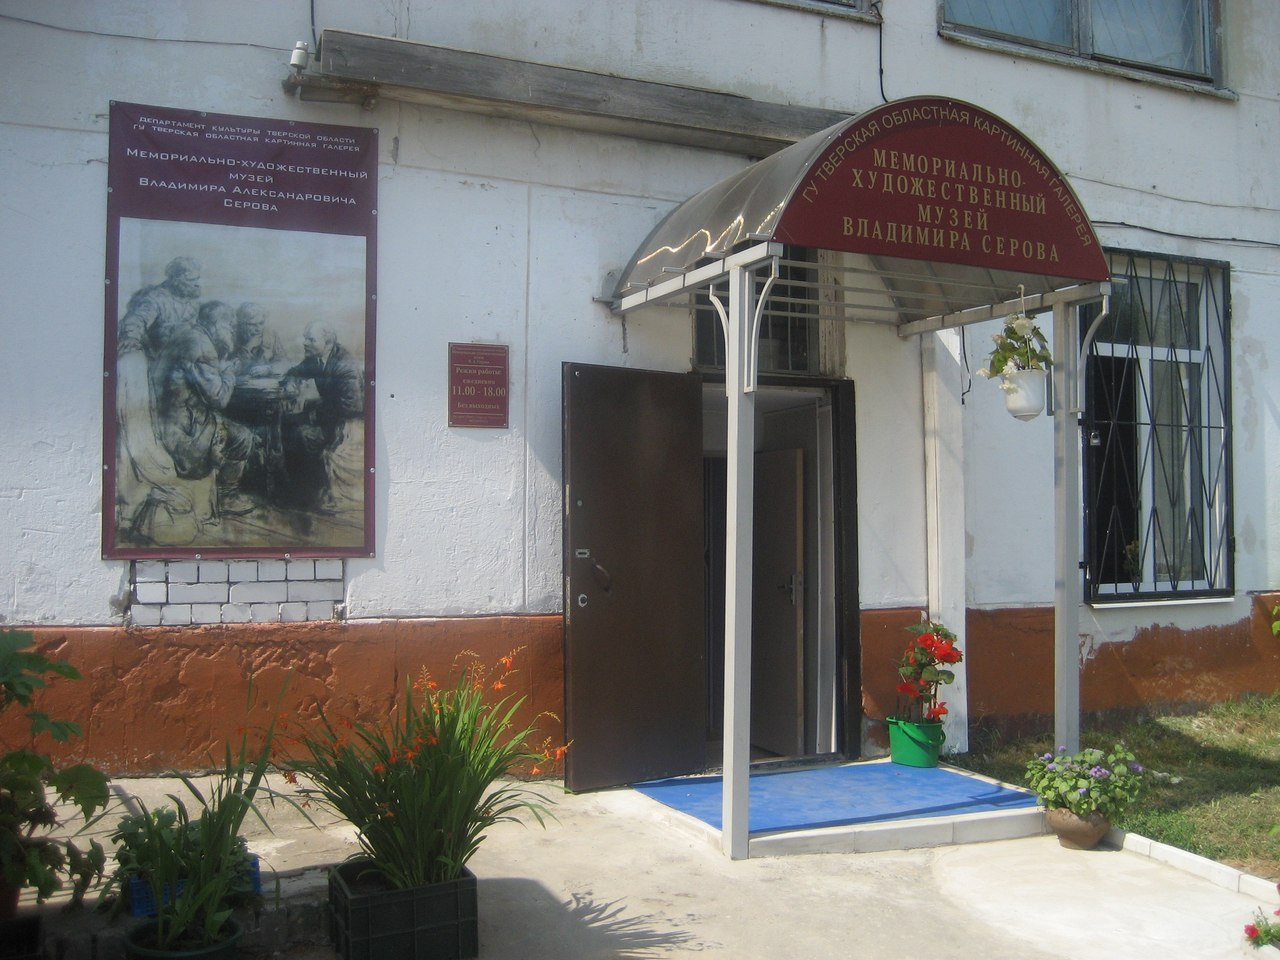 Memorial art museum of Vl. A. Serov